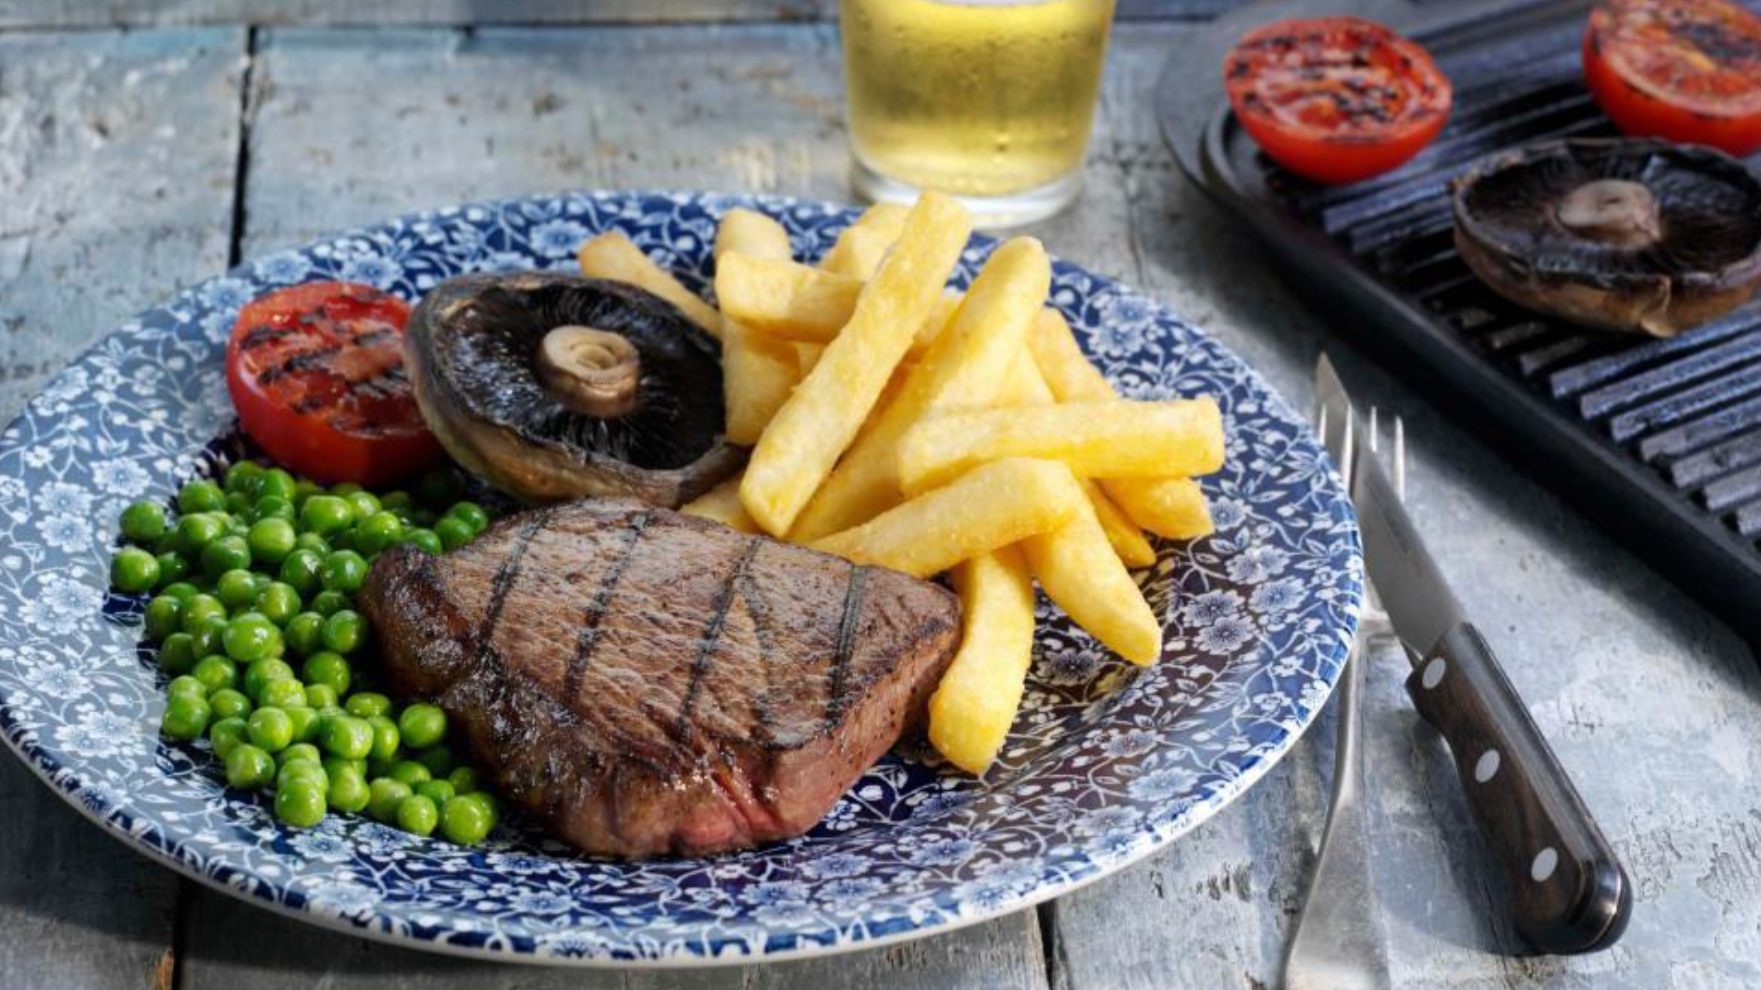 Get A Slap-Up Valentine's Day Meal At Wetherspoons For Just £20